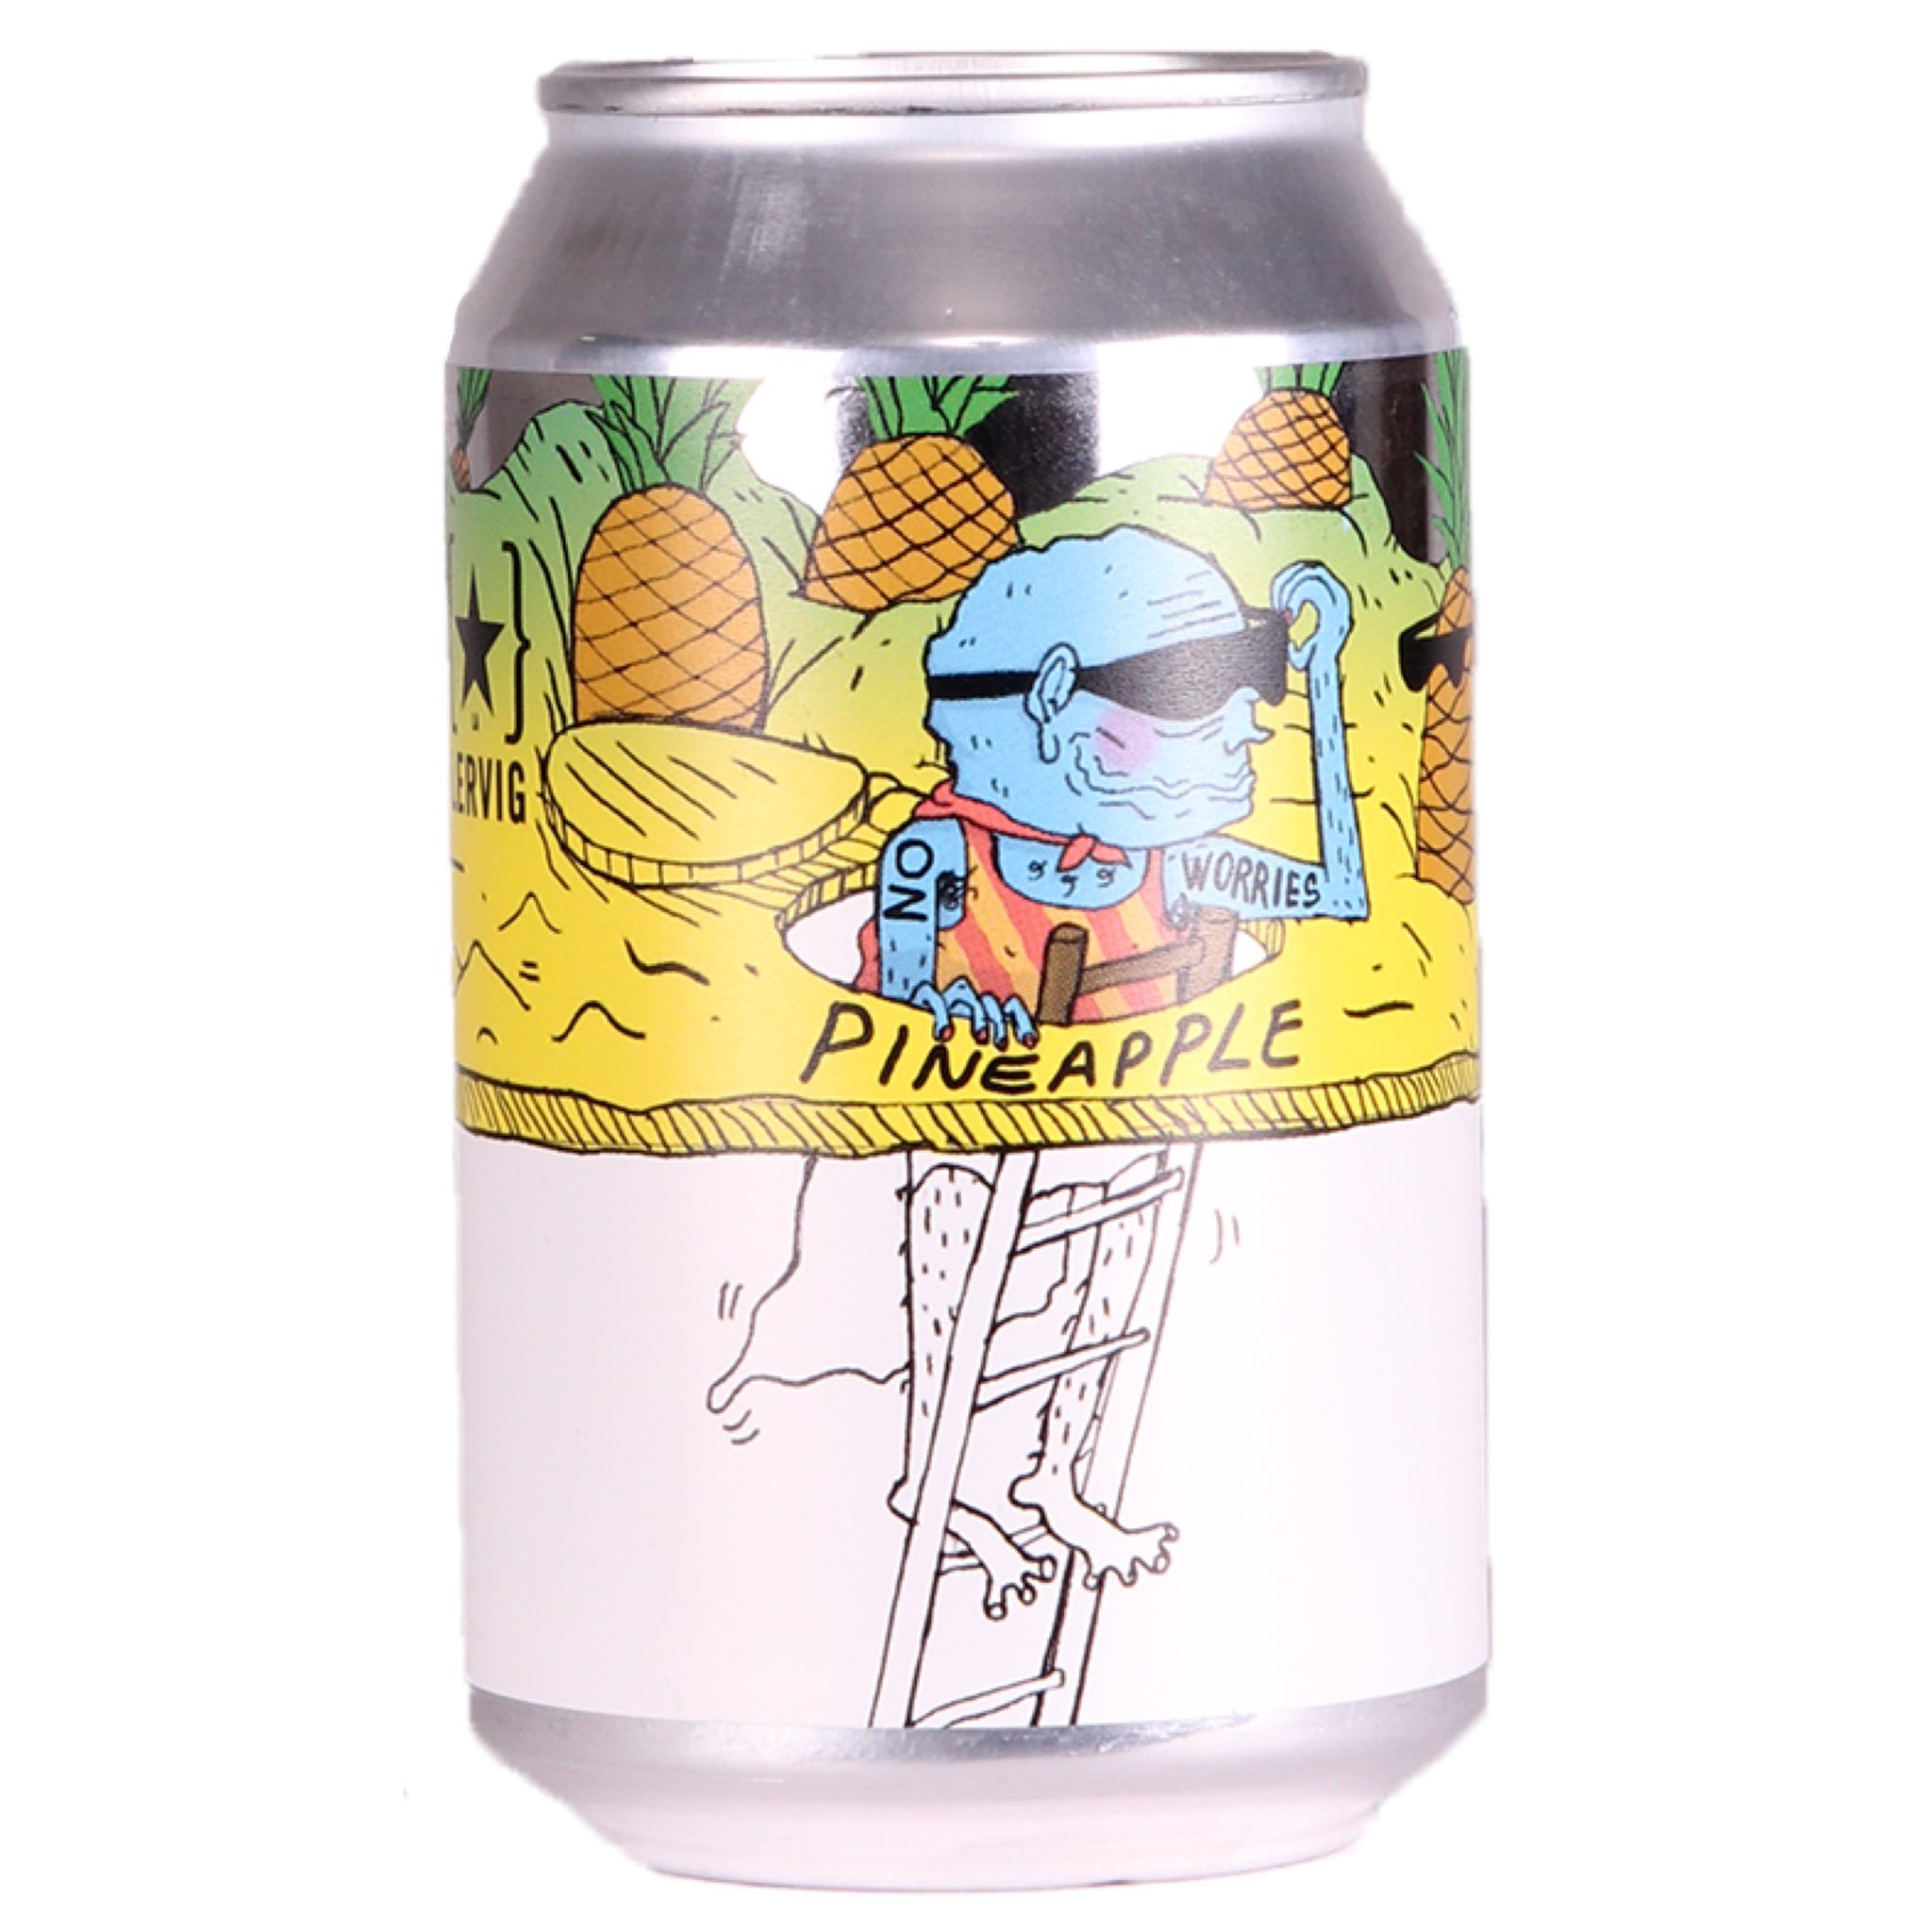 No Worries Pineapple Alcohol Free 0.5% 330ml Lervig Brewing